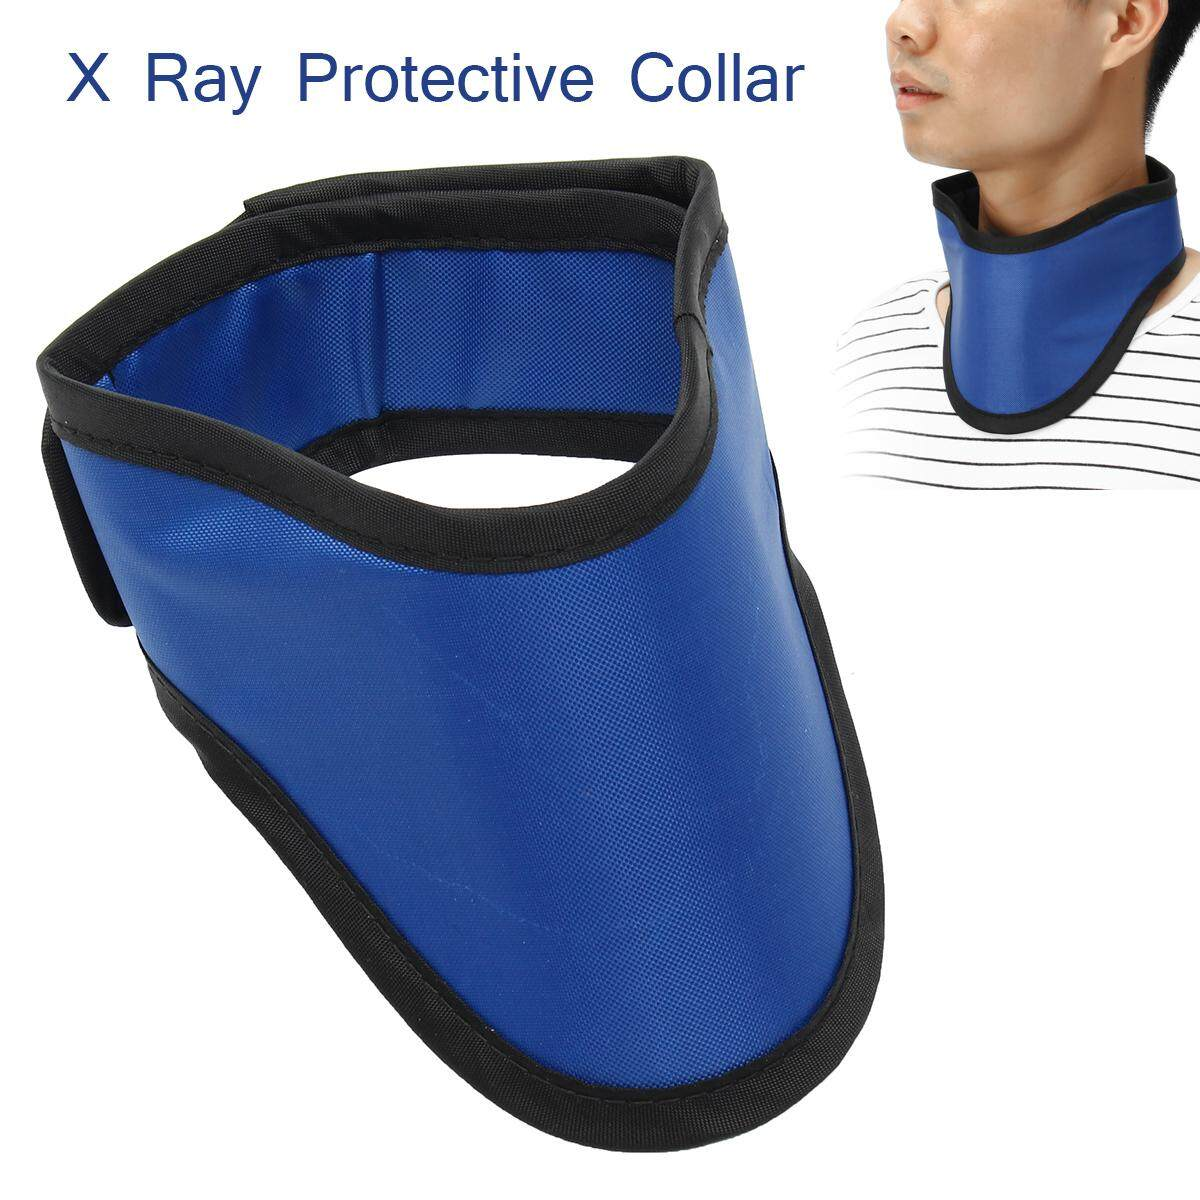 X Ray Protective Collar Lead Thyroid Collar Ct Radiation Shield Lead Neck Cover By Moonbeam.